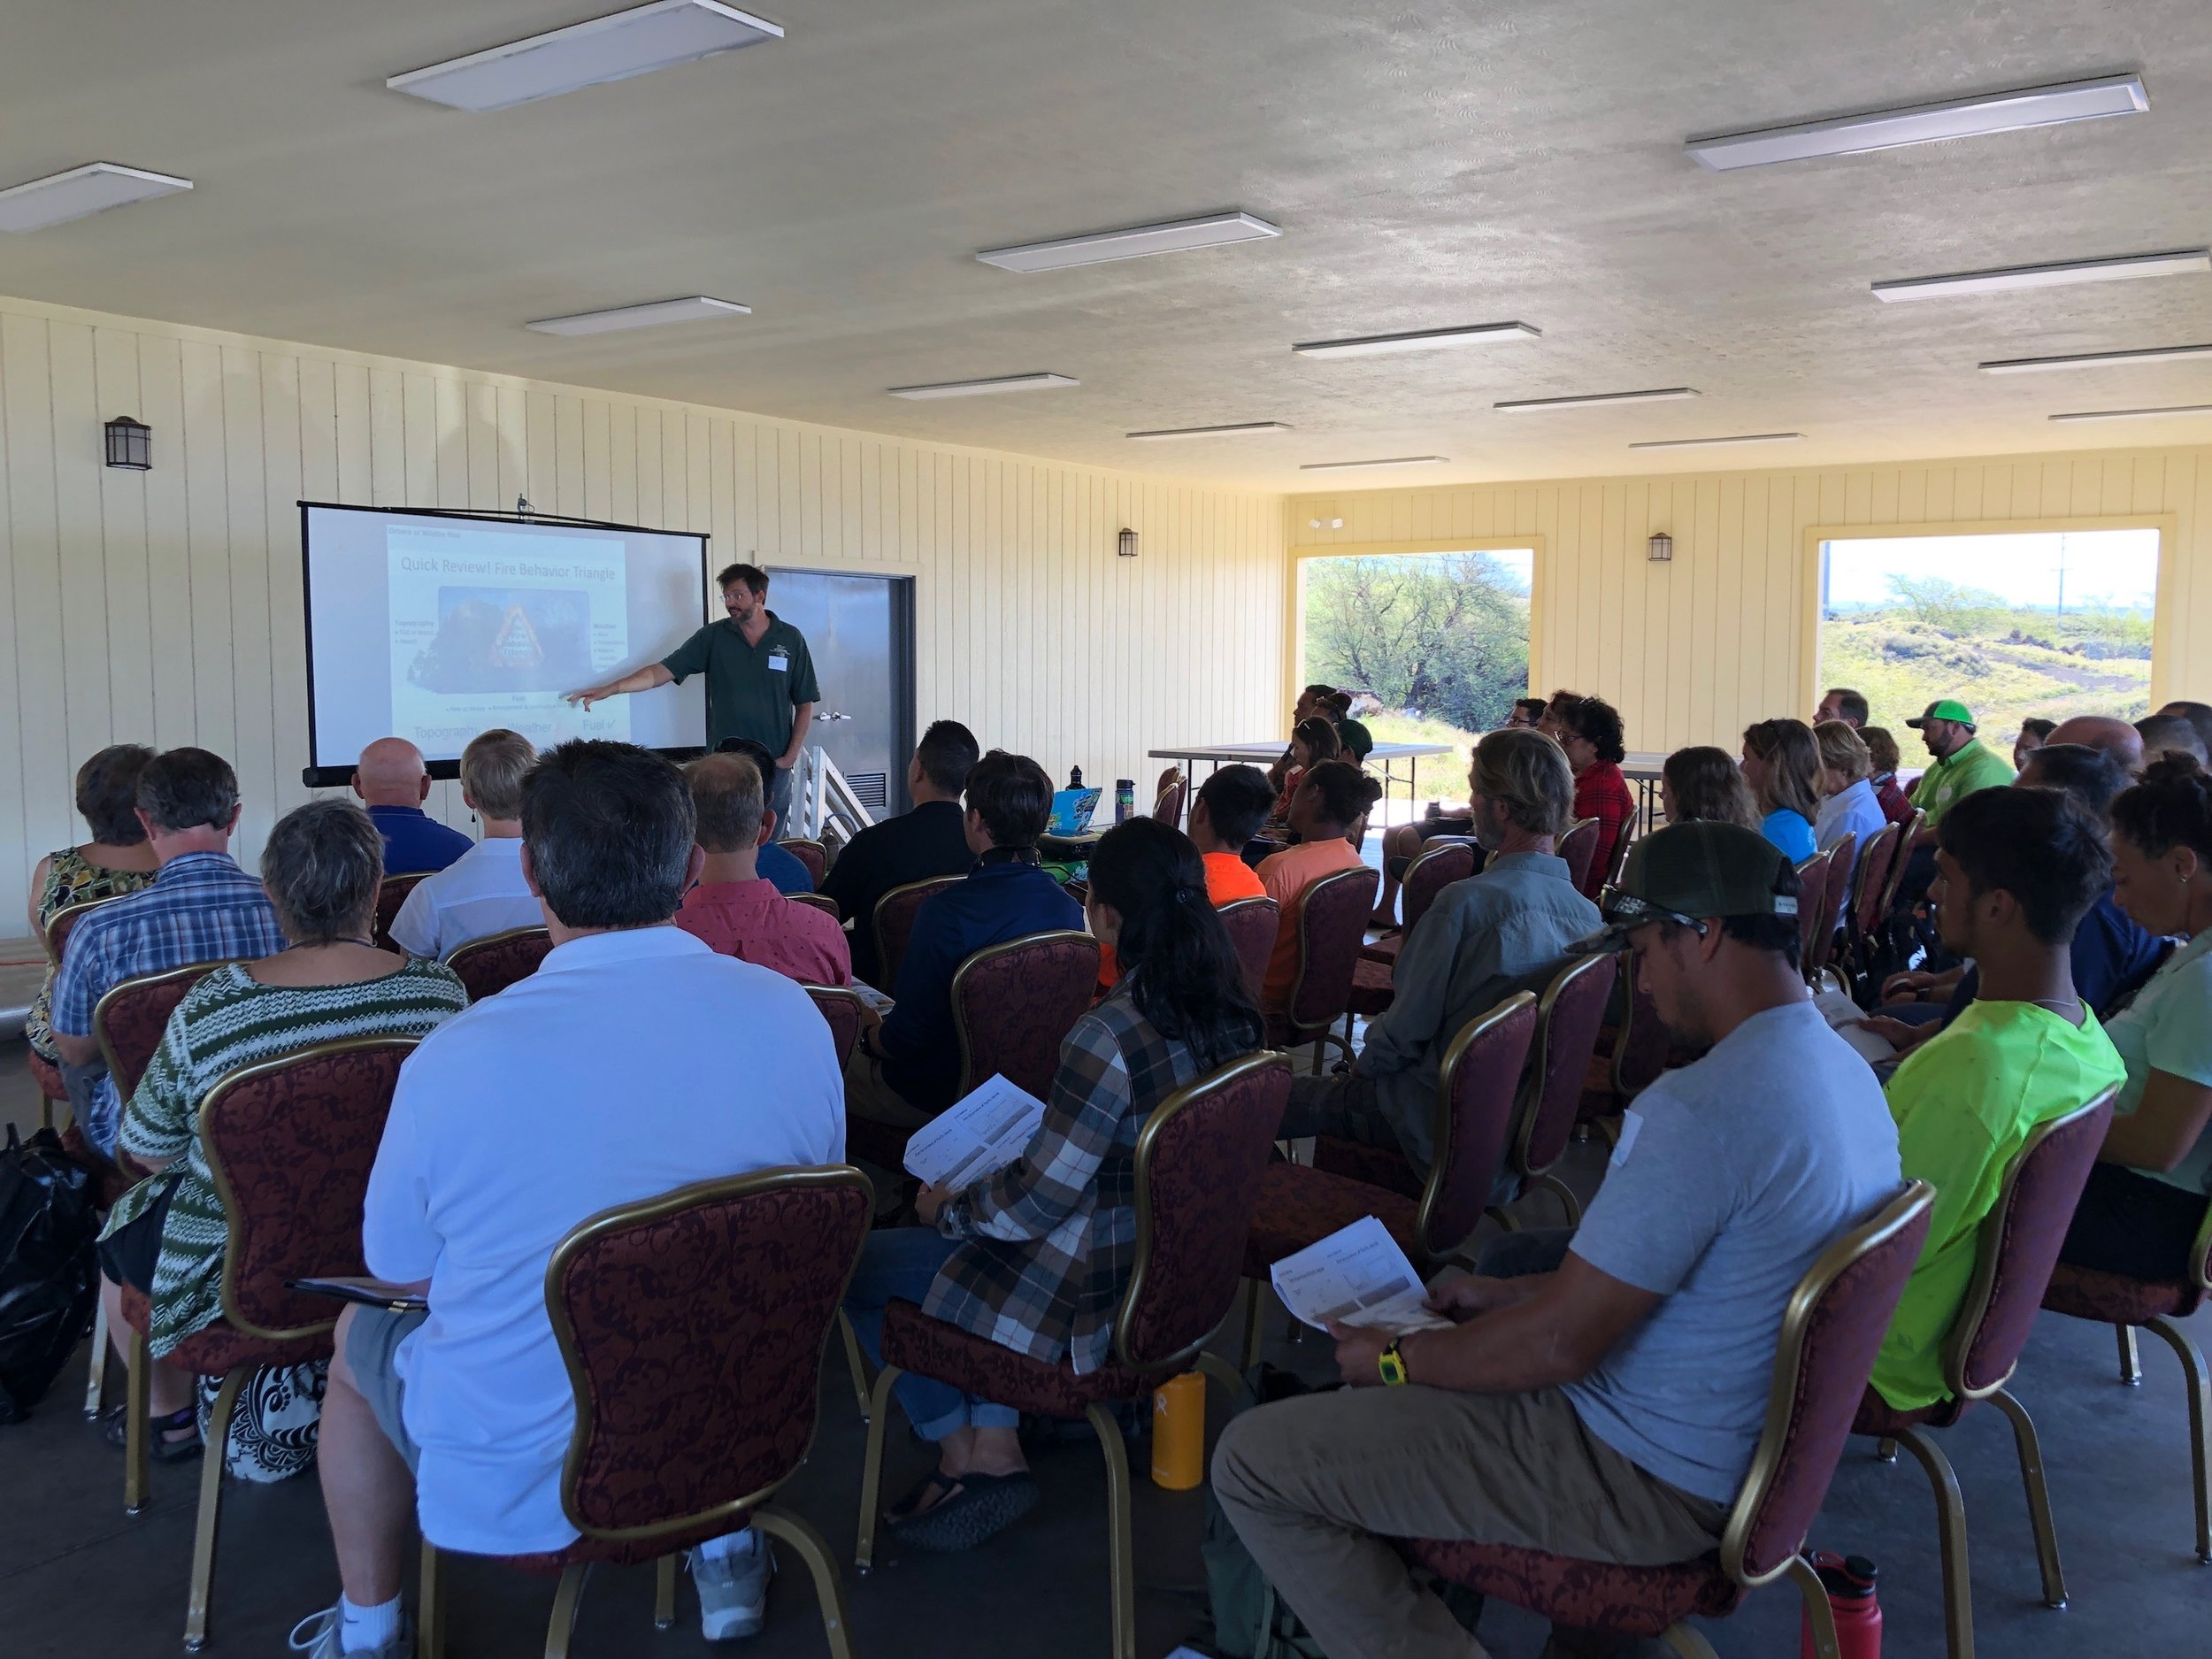 Hawaii Island Kailapa Vegetative Fuels Management Collaborative Action Planning Workshop_2_26_2019_11.jpg